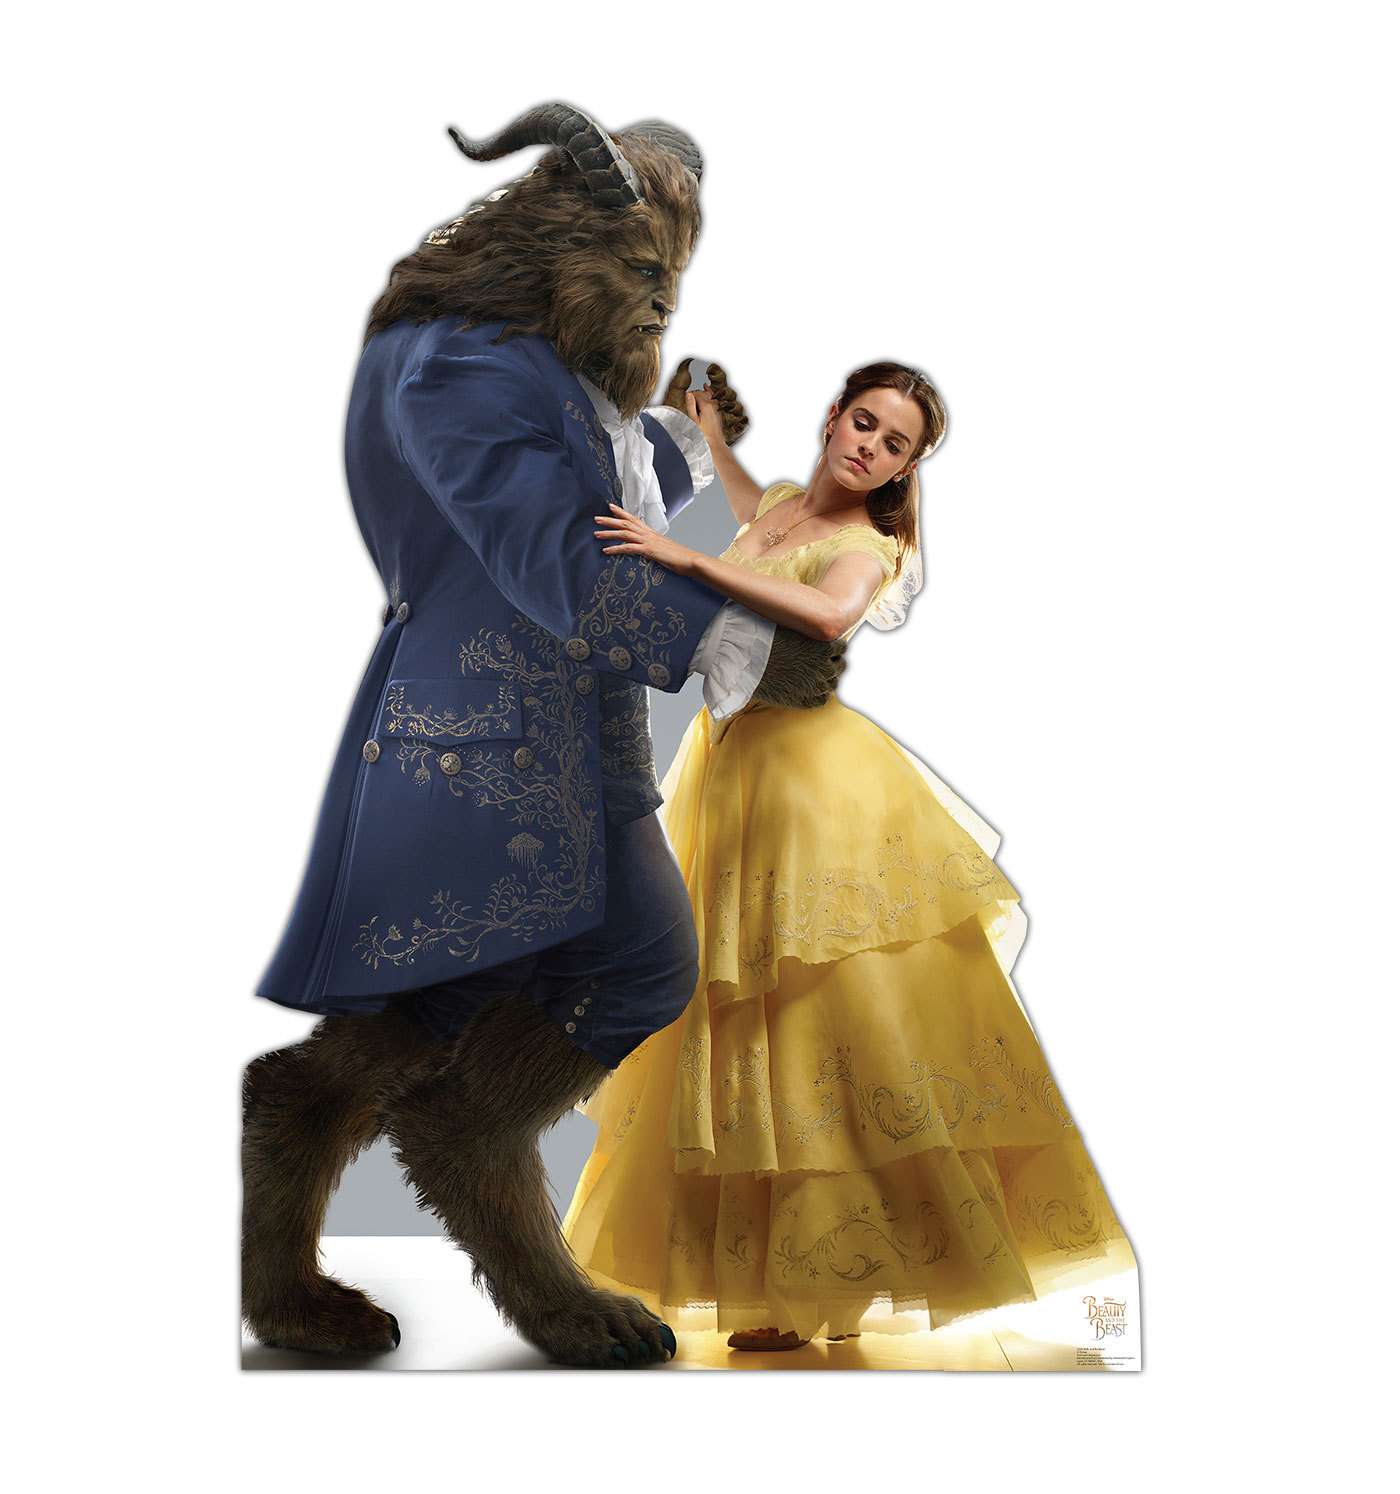 Primary image for BELLE & BEAST EMMA WATSON BEAUTY CARDBOARD STANDUP CUTOUT NEW LICENSED 2225